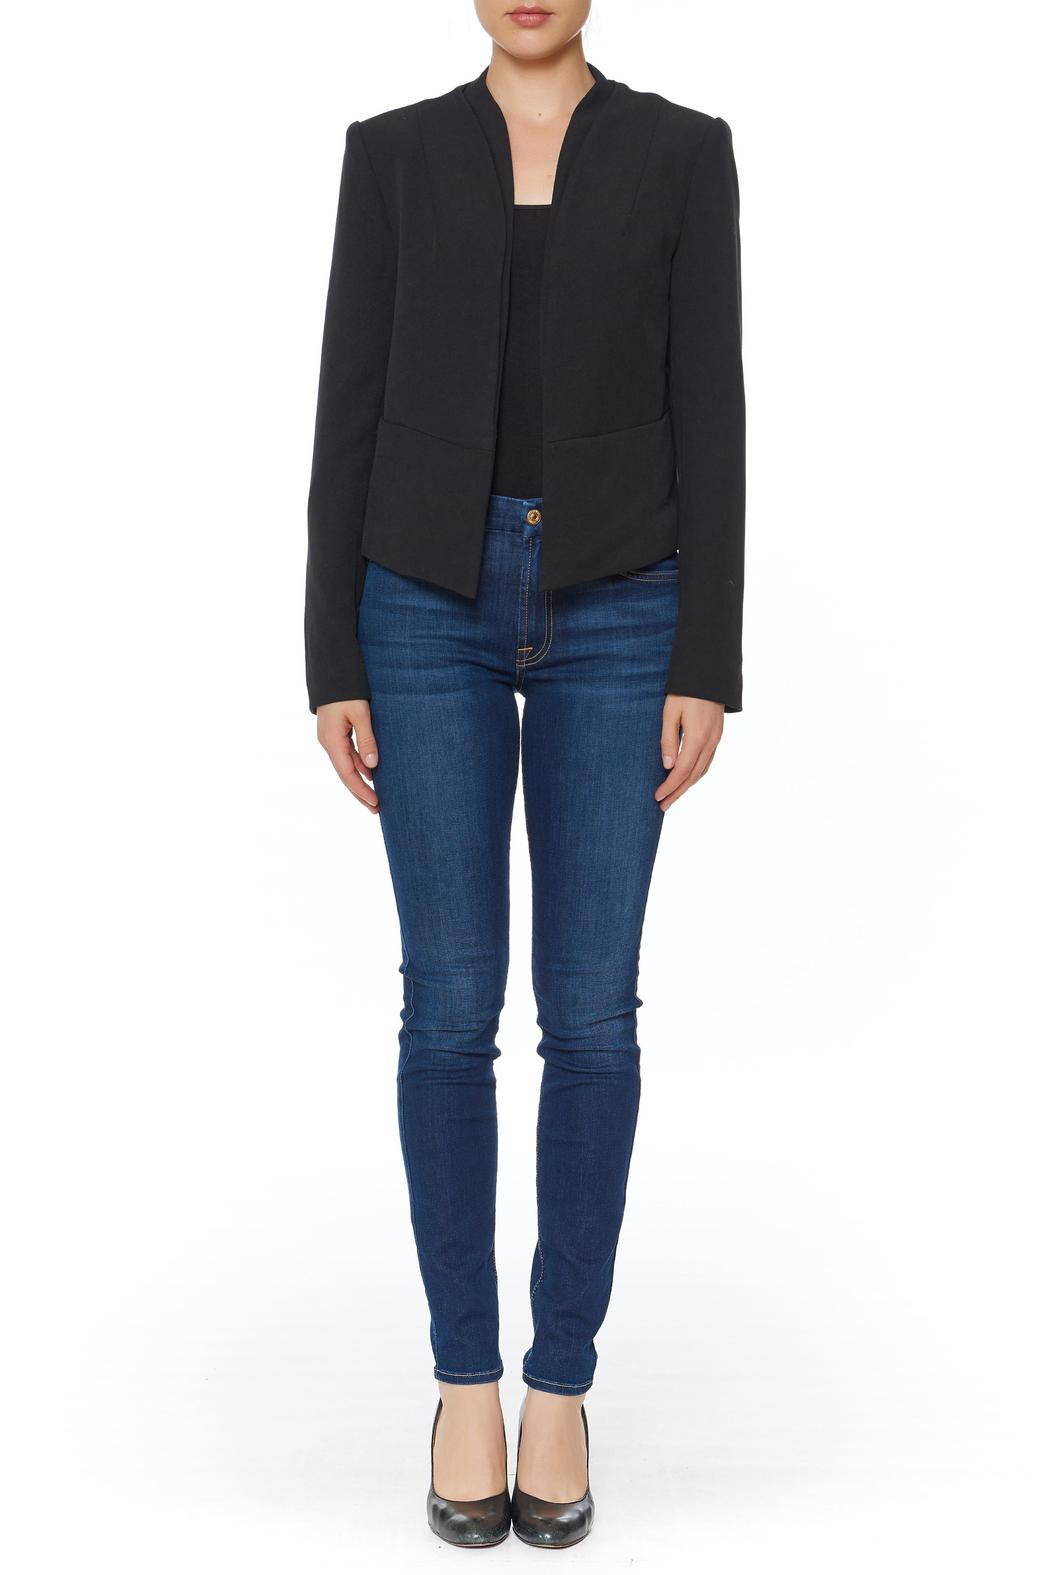 OVI Cropped Open Blazer - Main Image